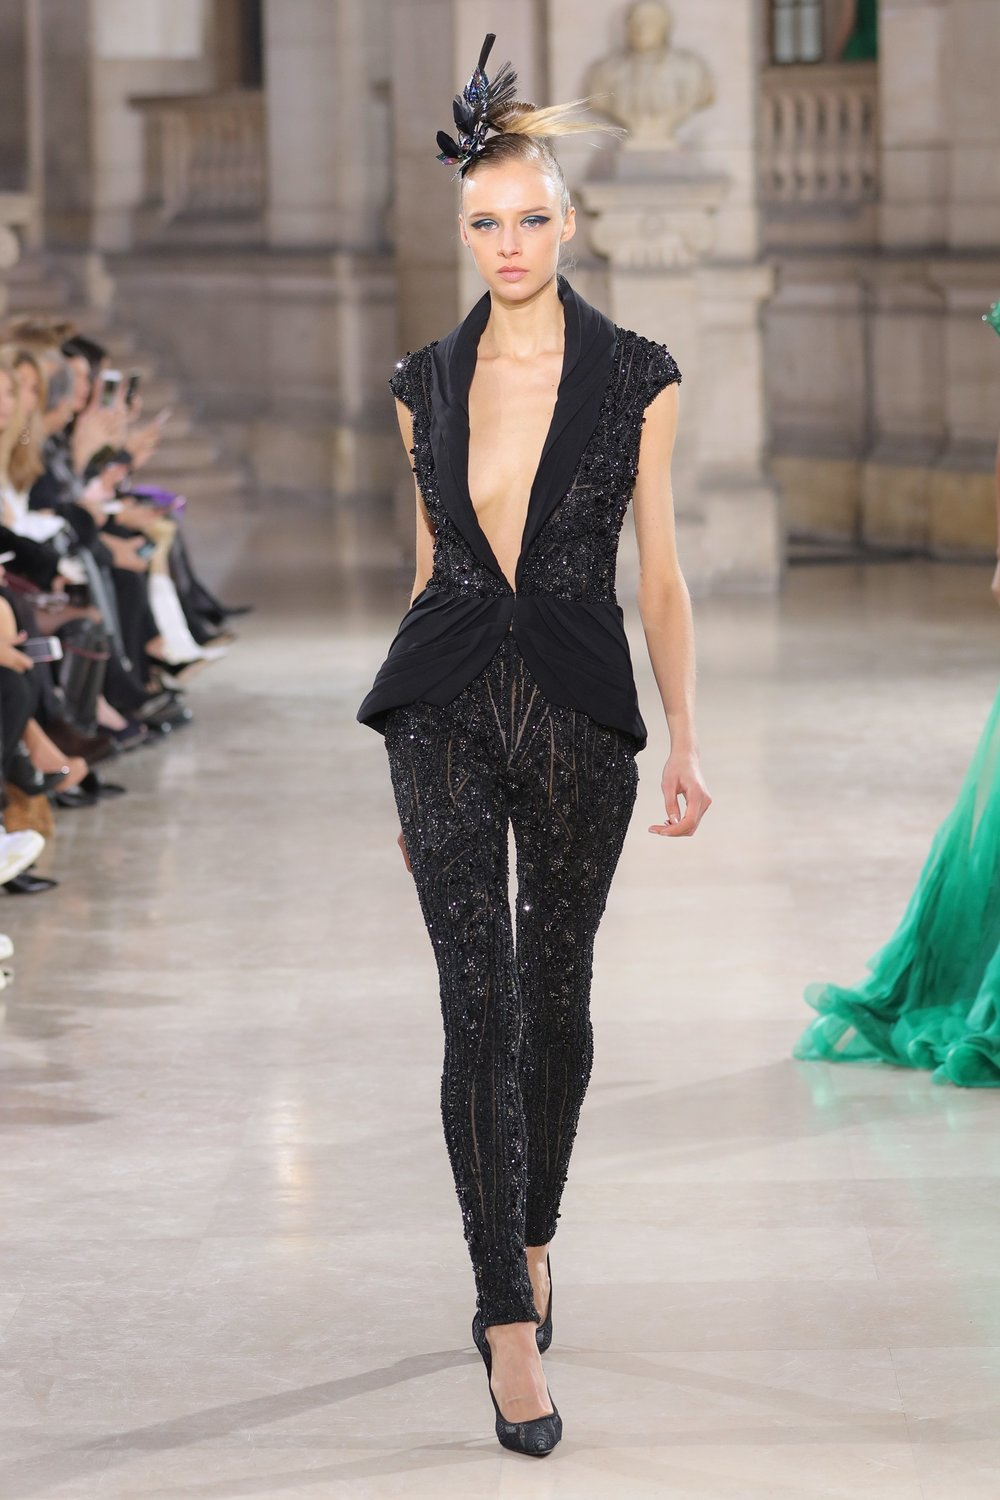 TONY_WARD_COUTURE_SS19_26.jpg